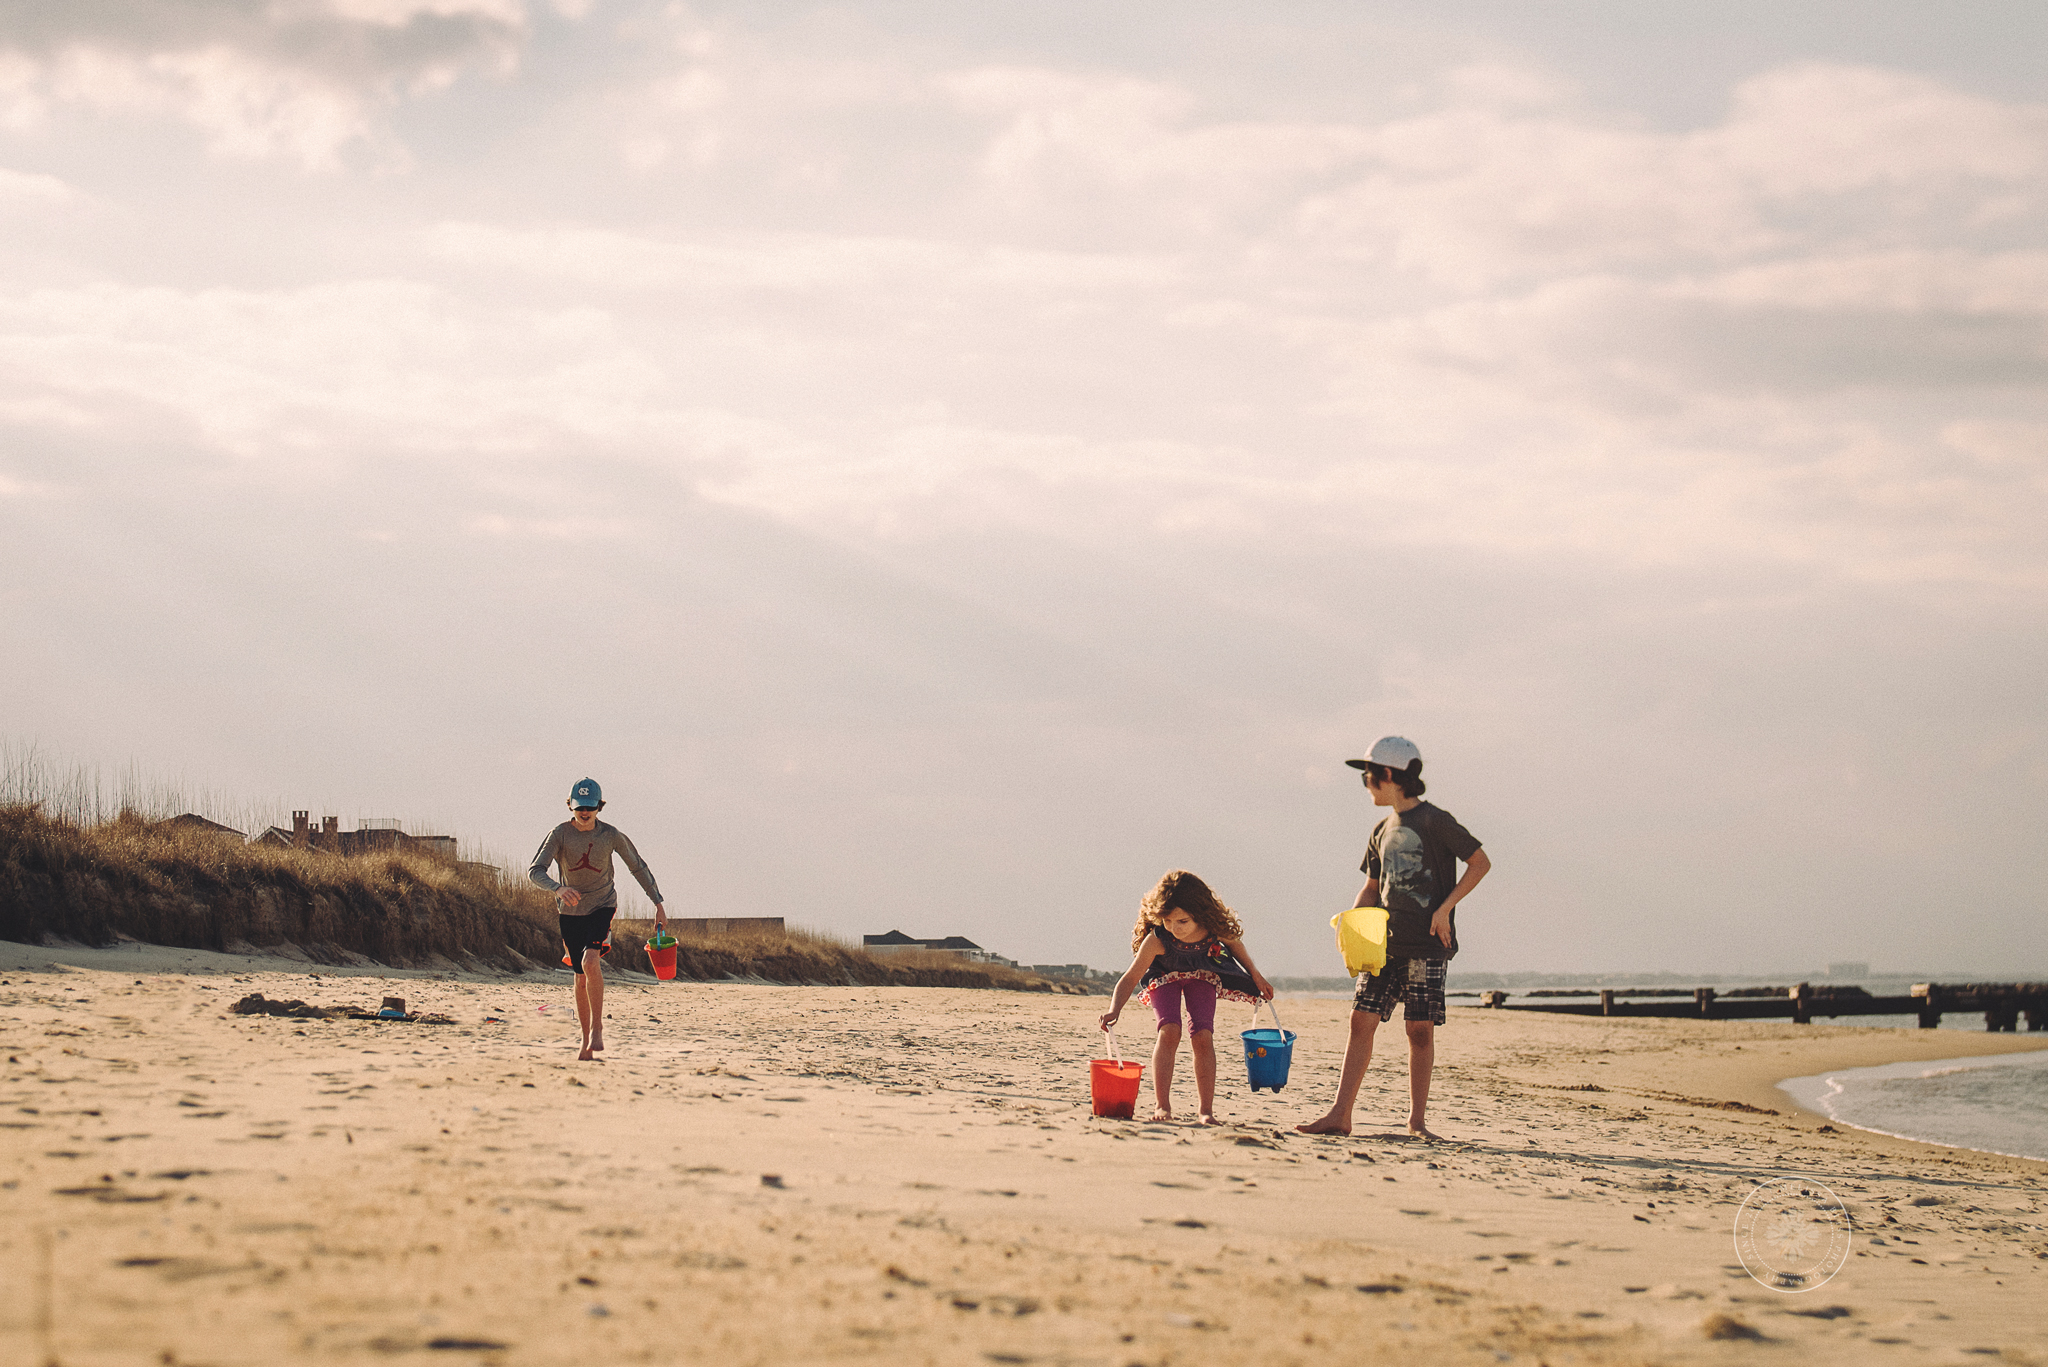 day-at-the-beach-kids-playing-in-sand-melissa-bliss-photography-documentary-photographers